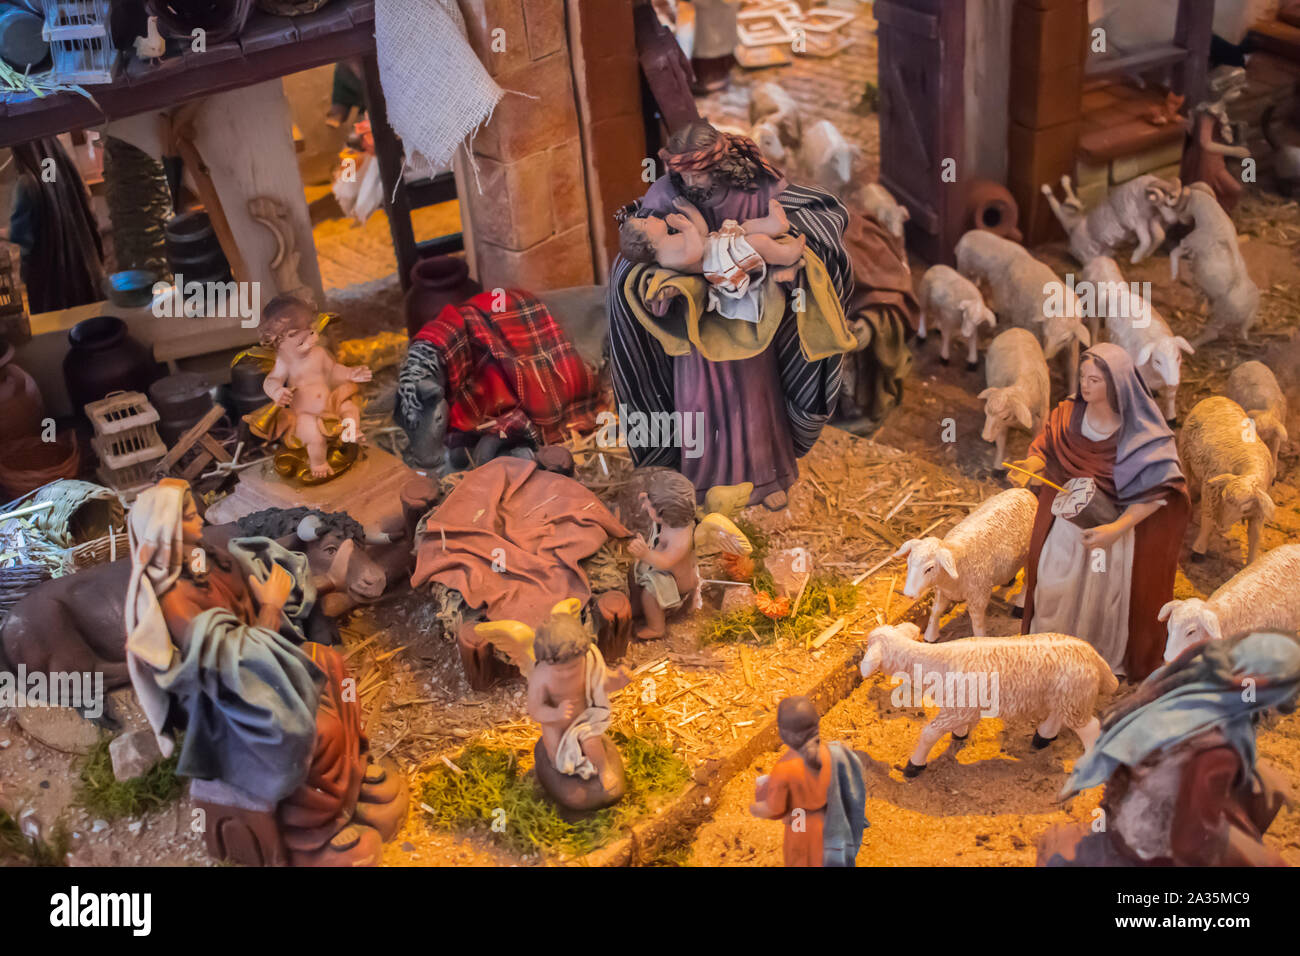 Birth Of Christmas High Resolution Stock Photography And Images Alamy